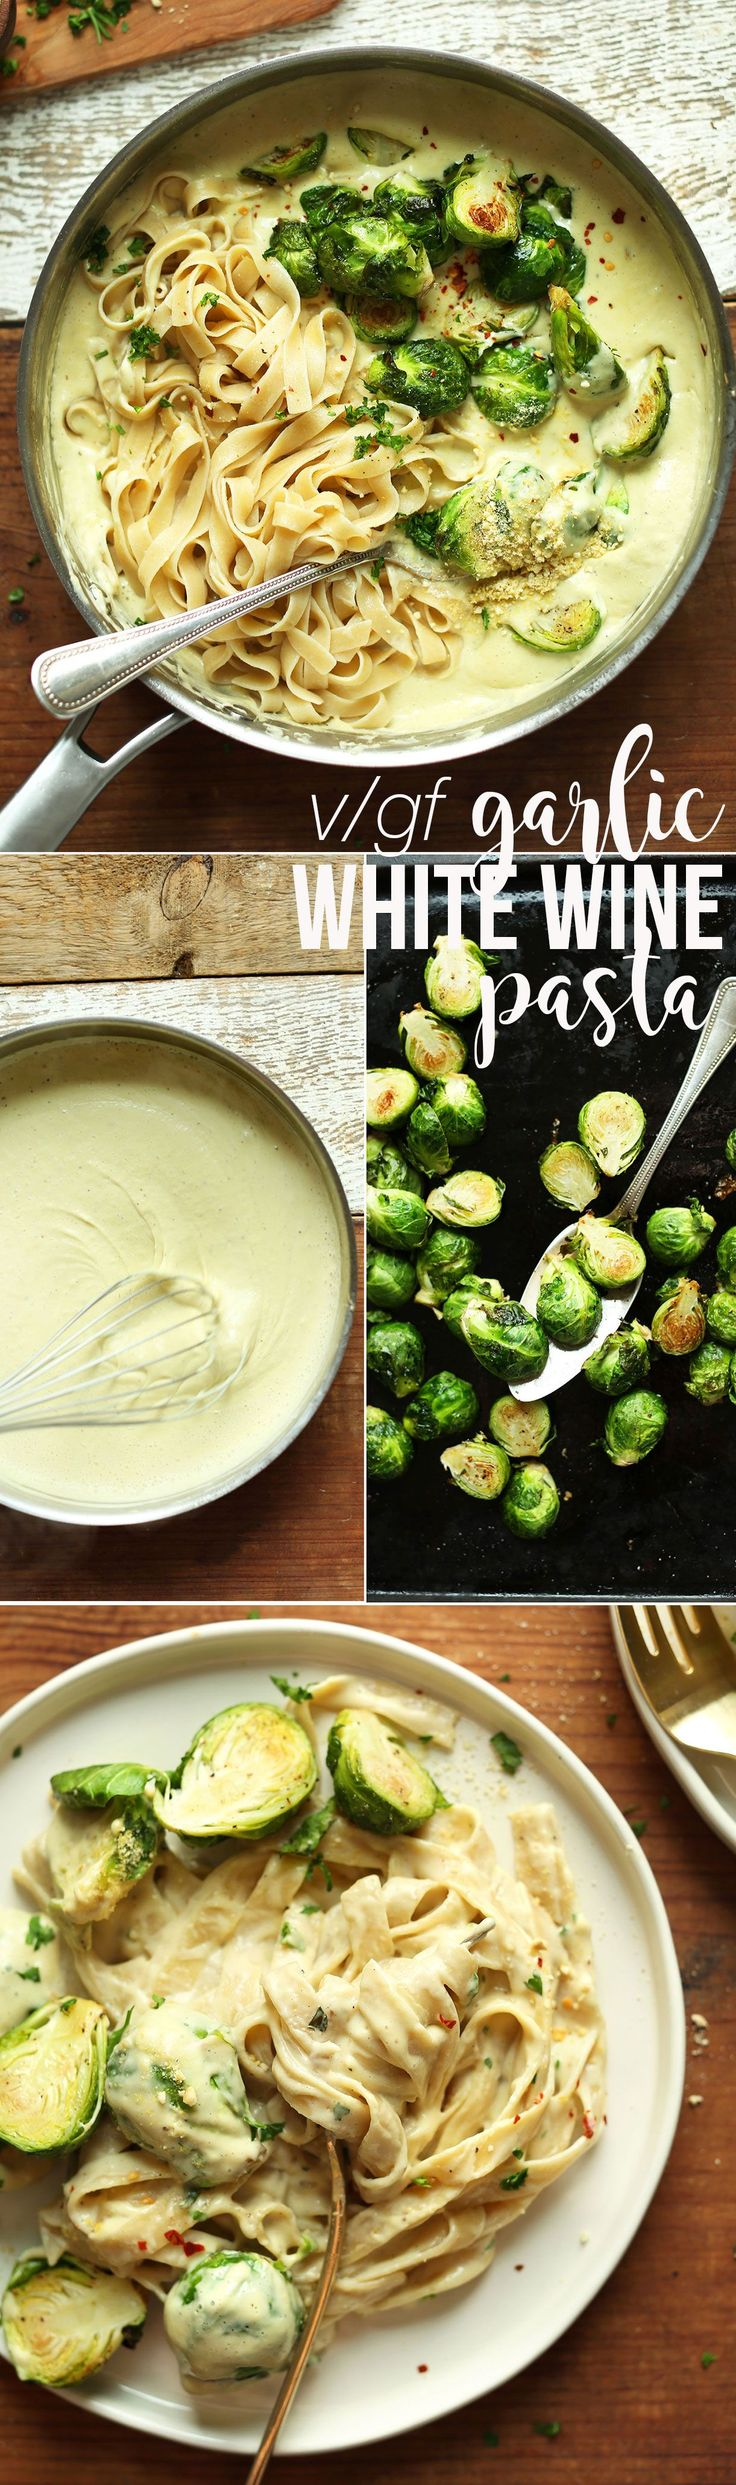 30-minute Garlic & White Wine Pasta with Roasted Brussels Sprouts! Flavorful, hearty, wholesome! #vegan #glutenfree #pasta #recipe